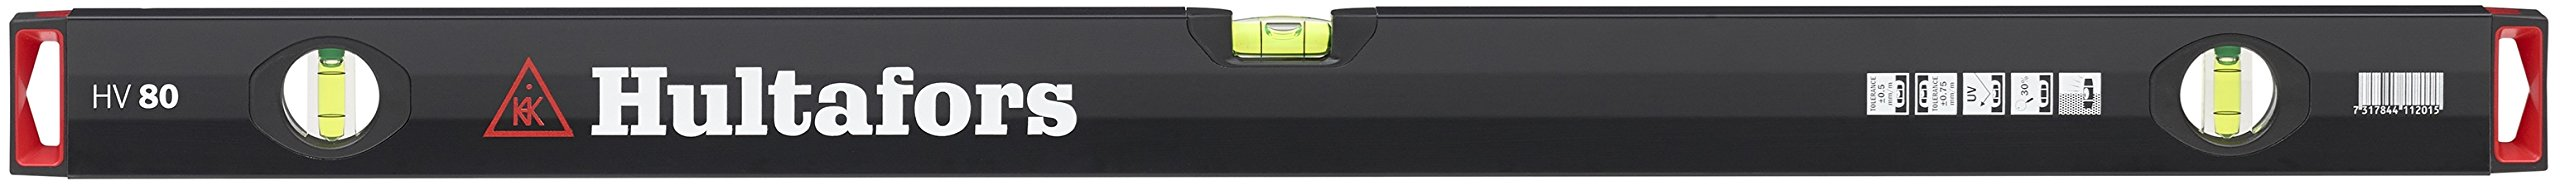 Hultafors 411201 HV 80 of aluminium Spirit Level